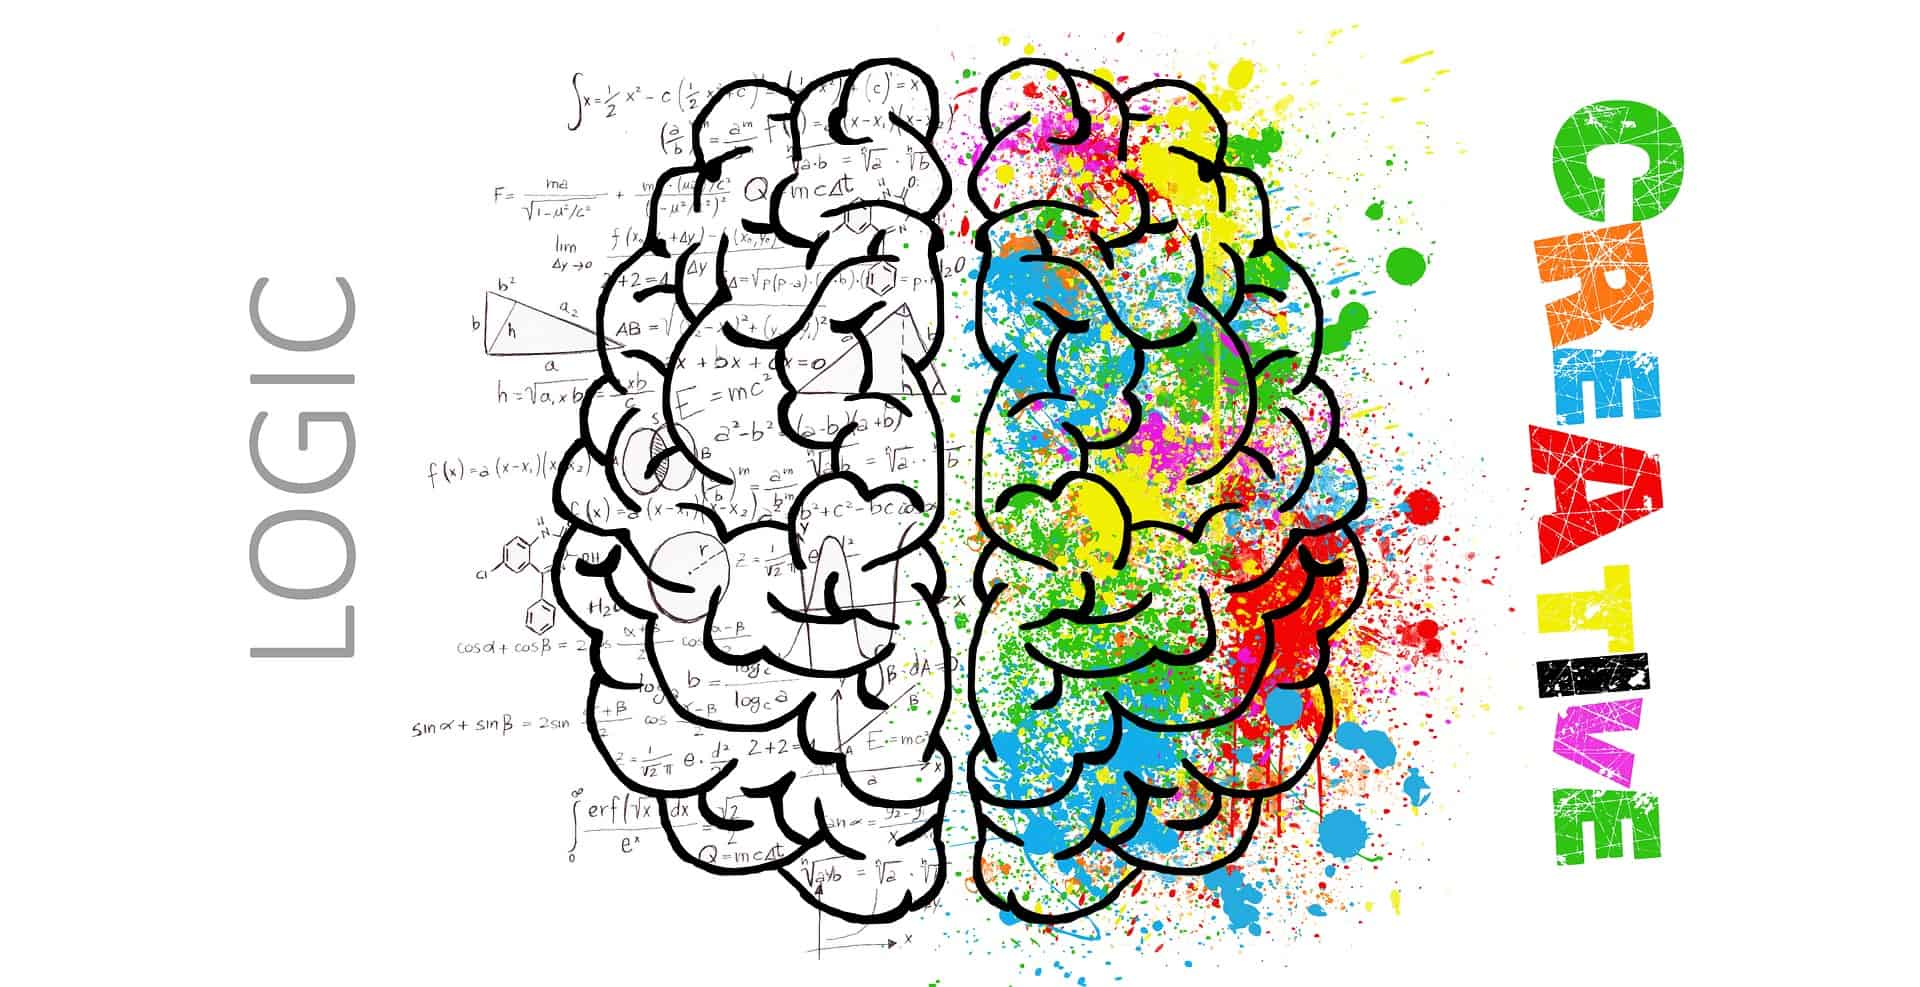 Some Interesting Facts About Our Mind